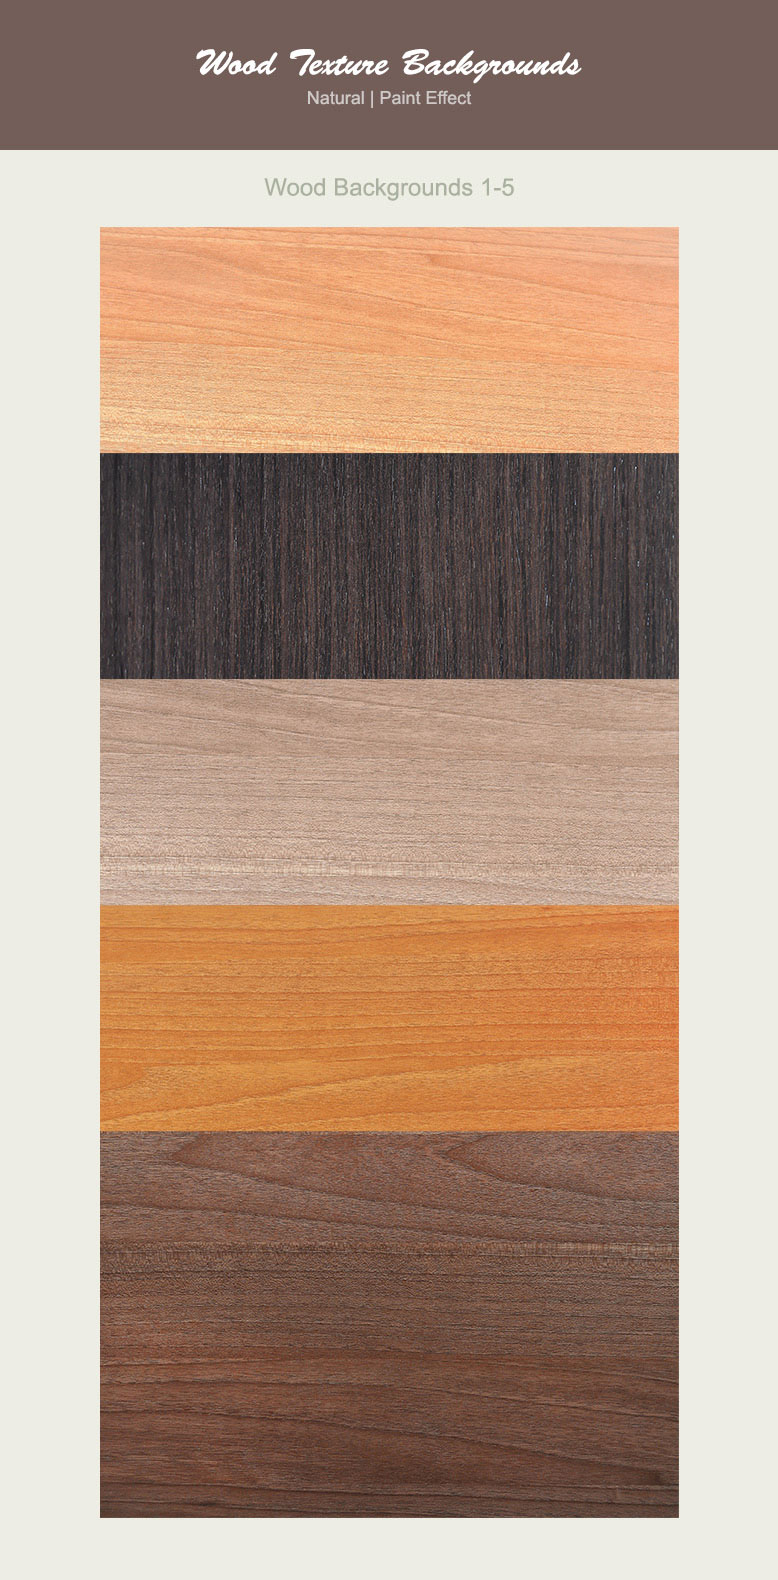 wood-texture-backgrounds-1-5